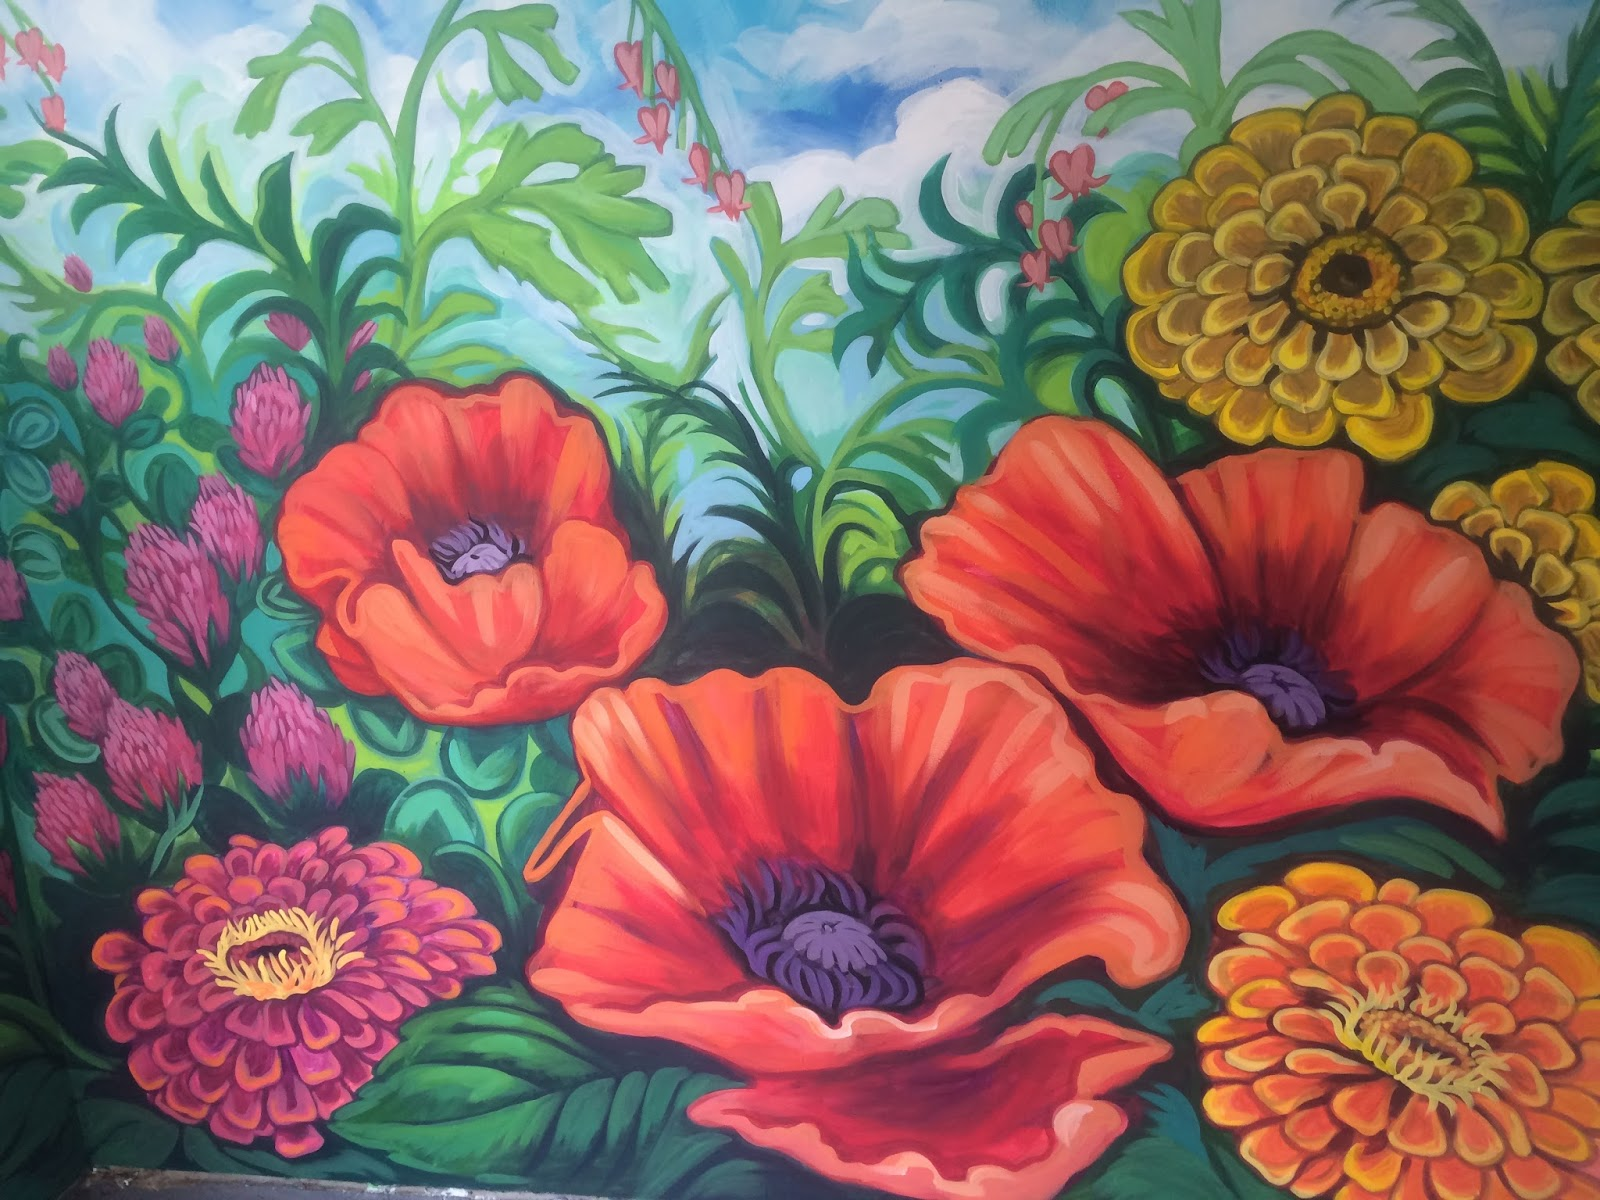 The talking walls may 2015 for Mural of flowers